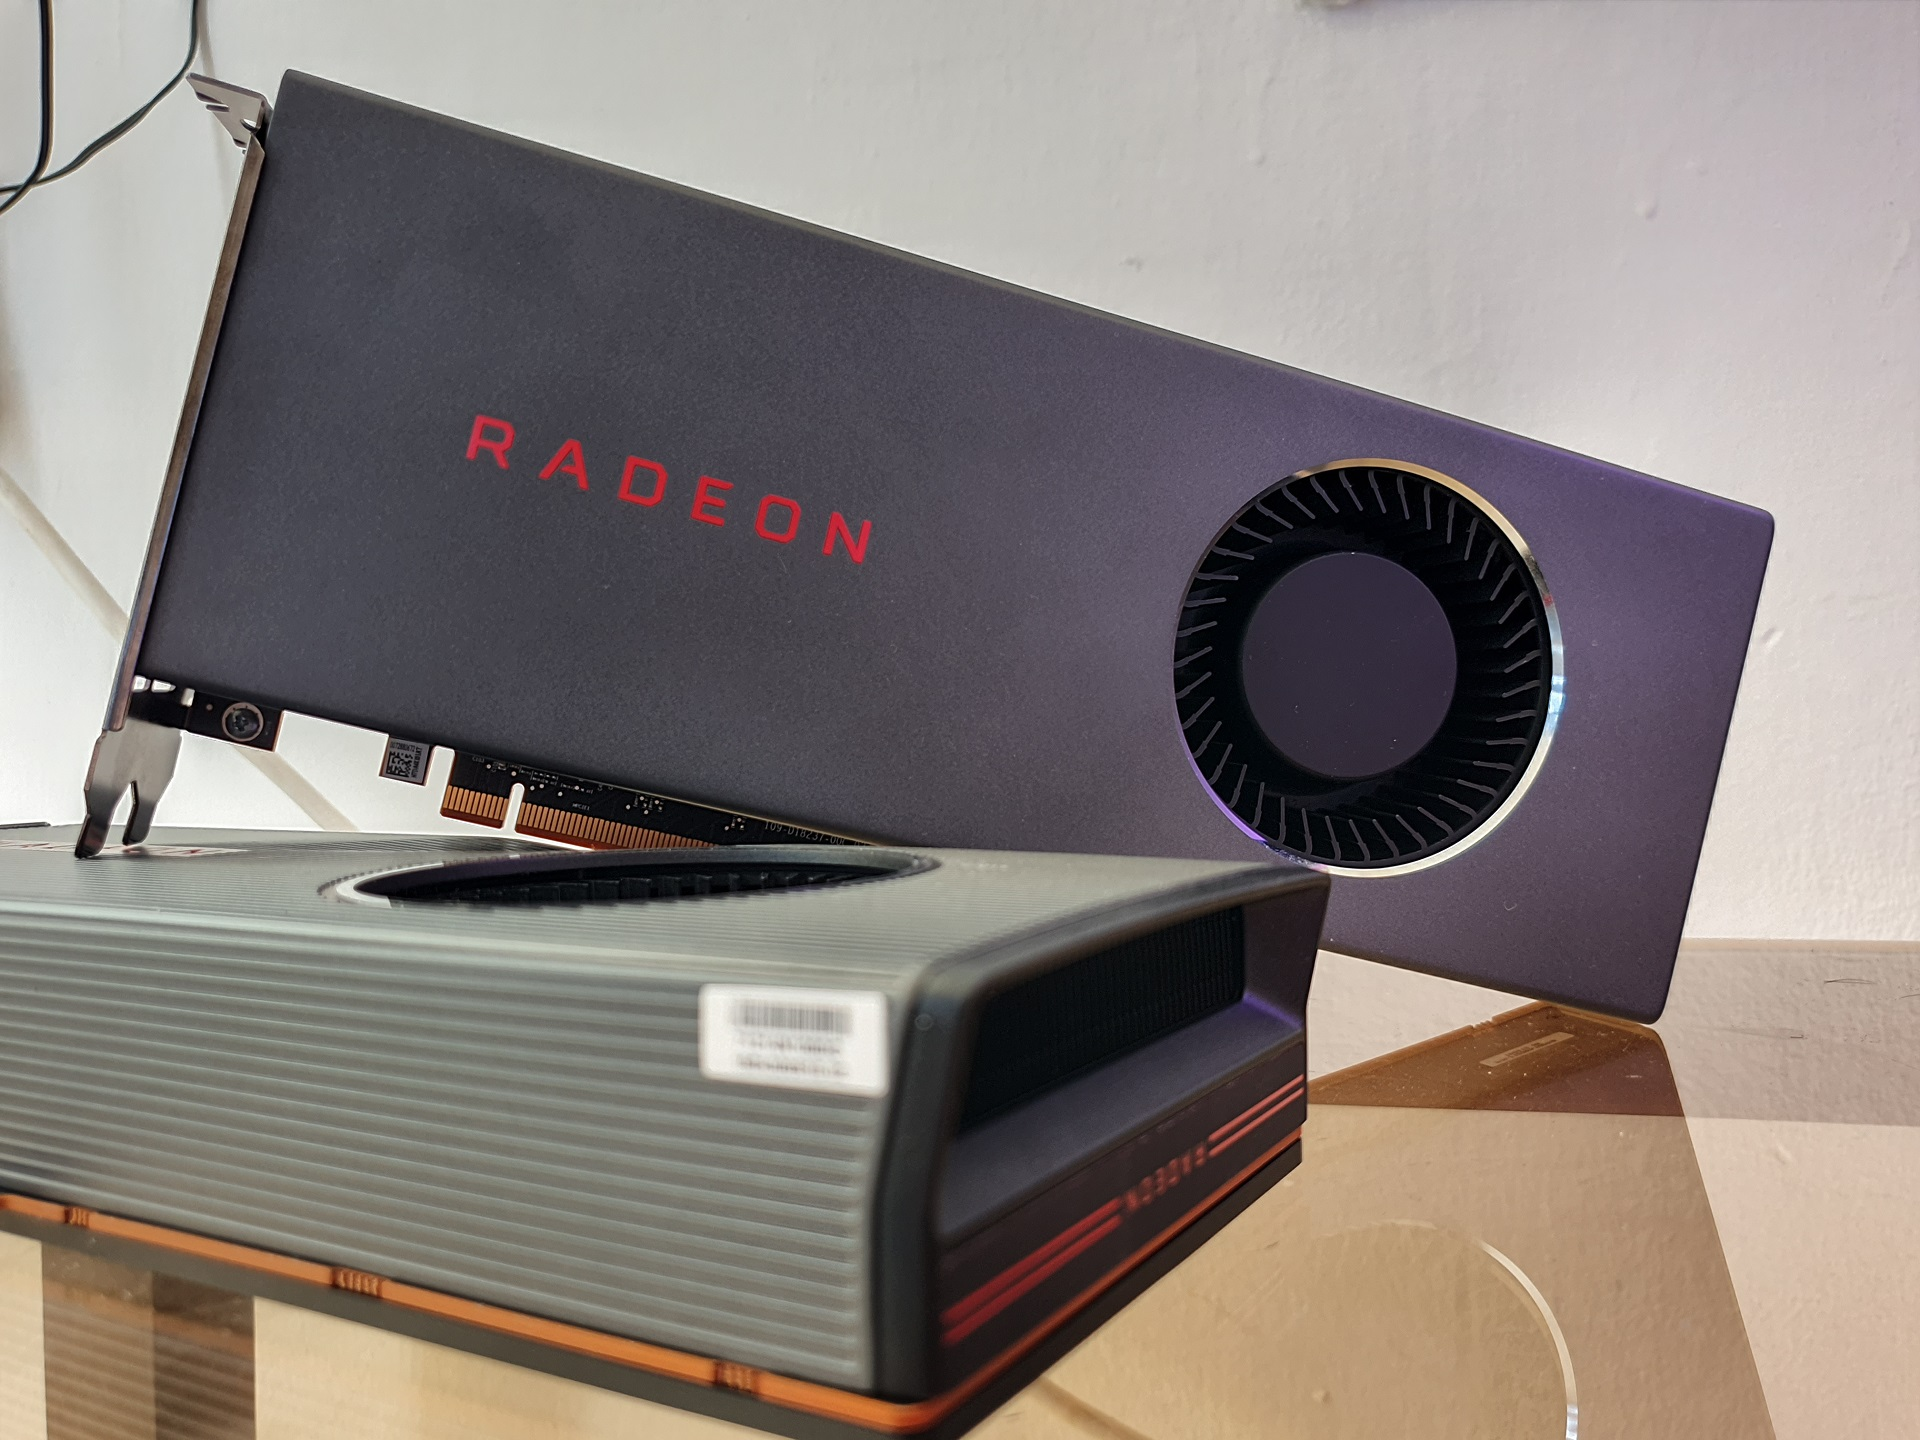 Photo of the big comeback: Radeon RX 5700 XT and Radeon RX 5700 video cards in review